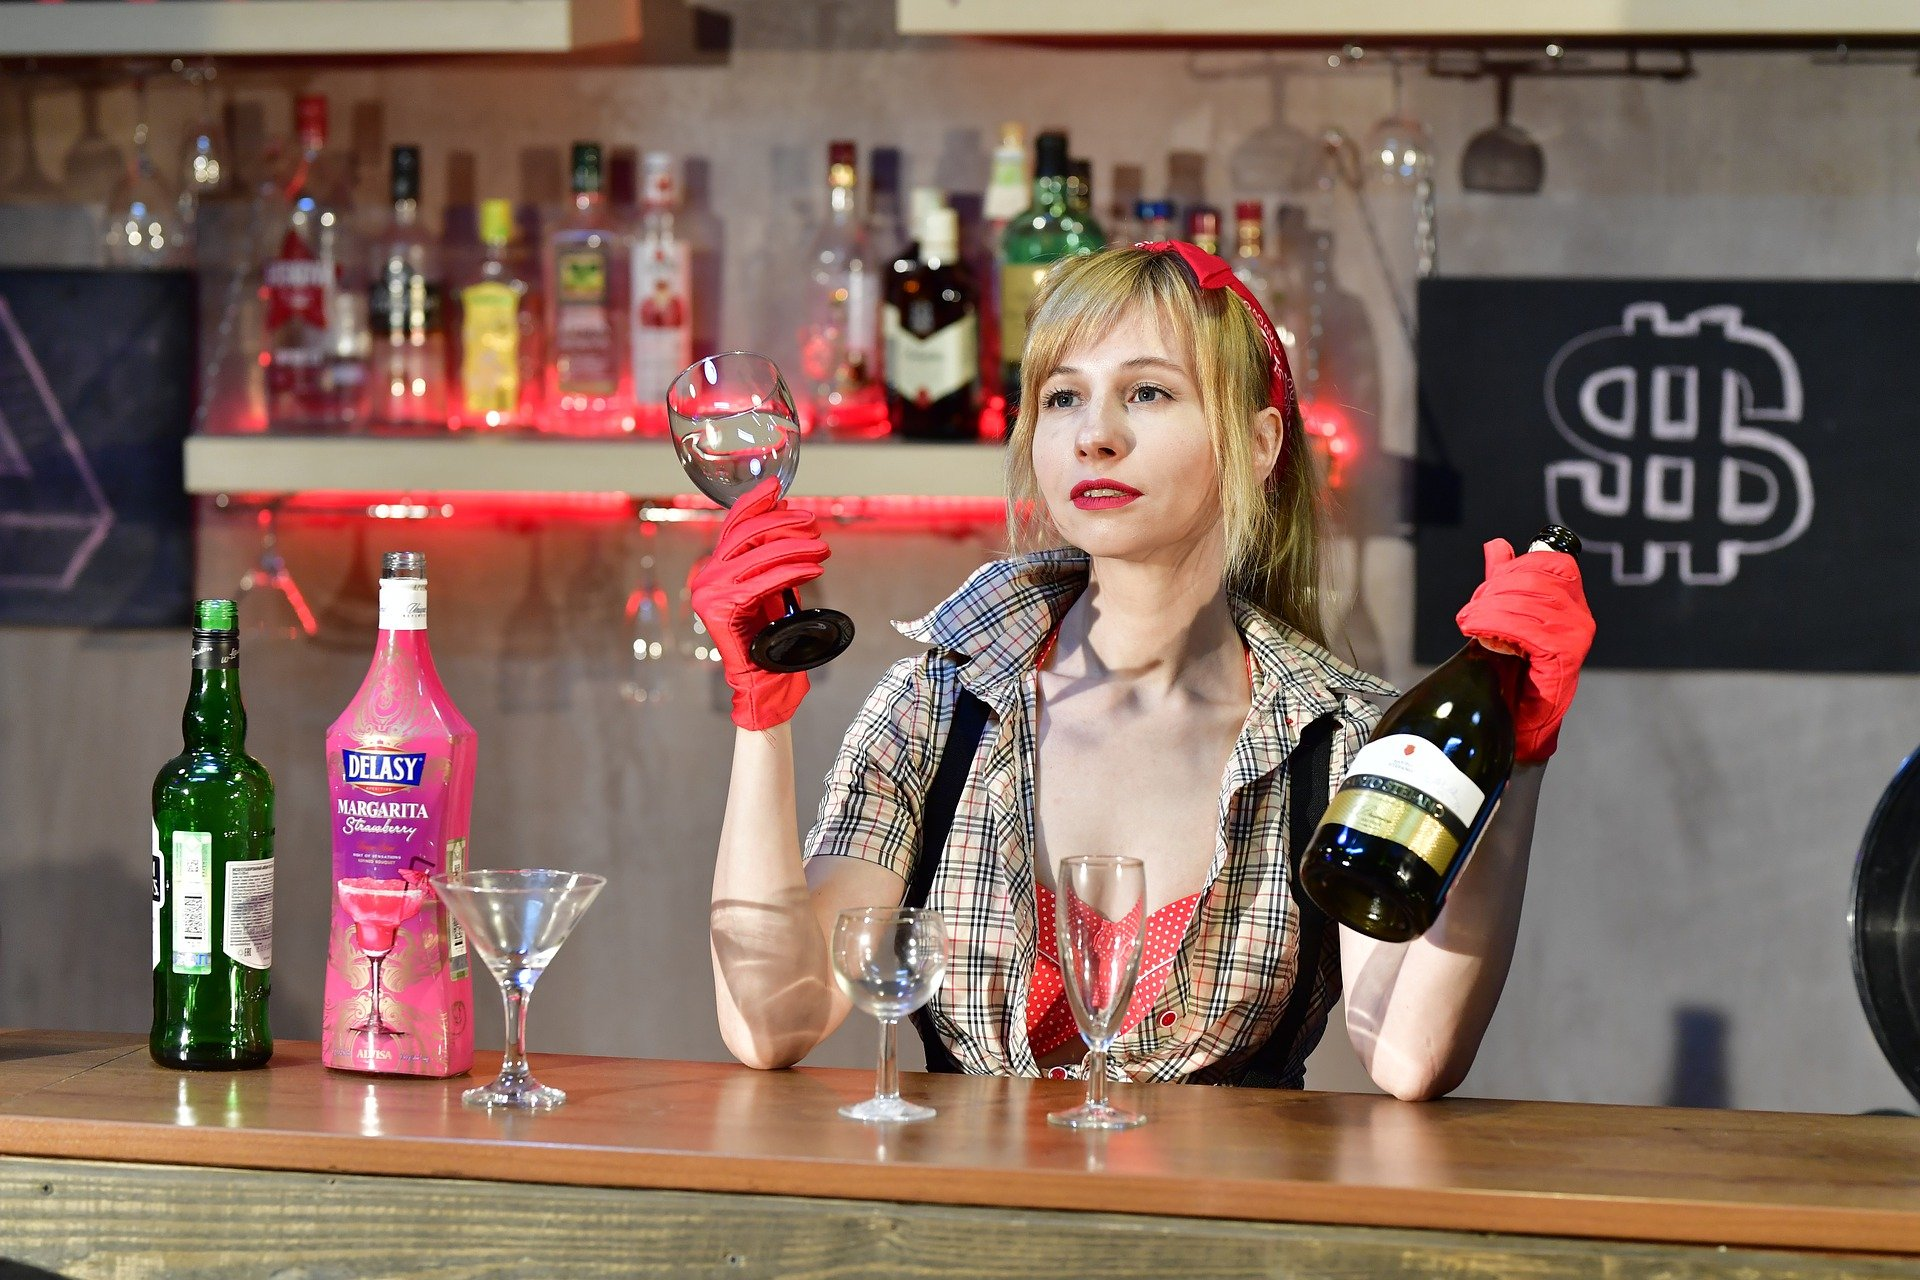 A barmaid holding up and offering drinks to a patron   Photo: Pixabay